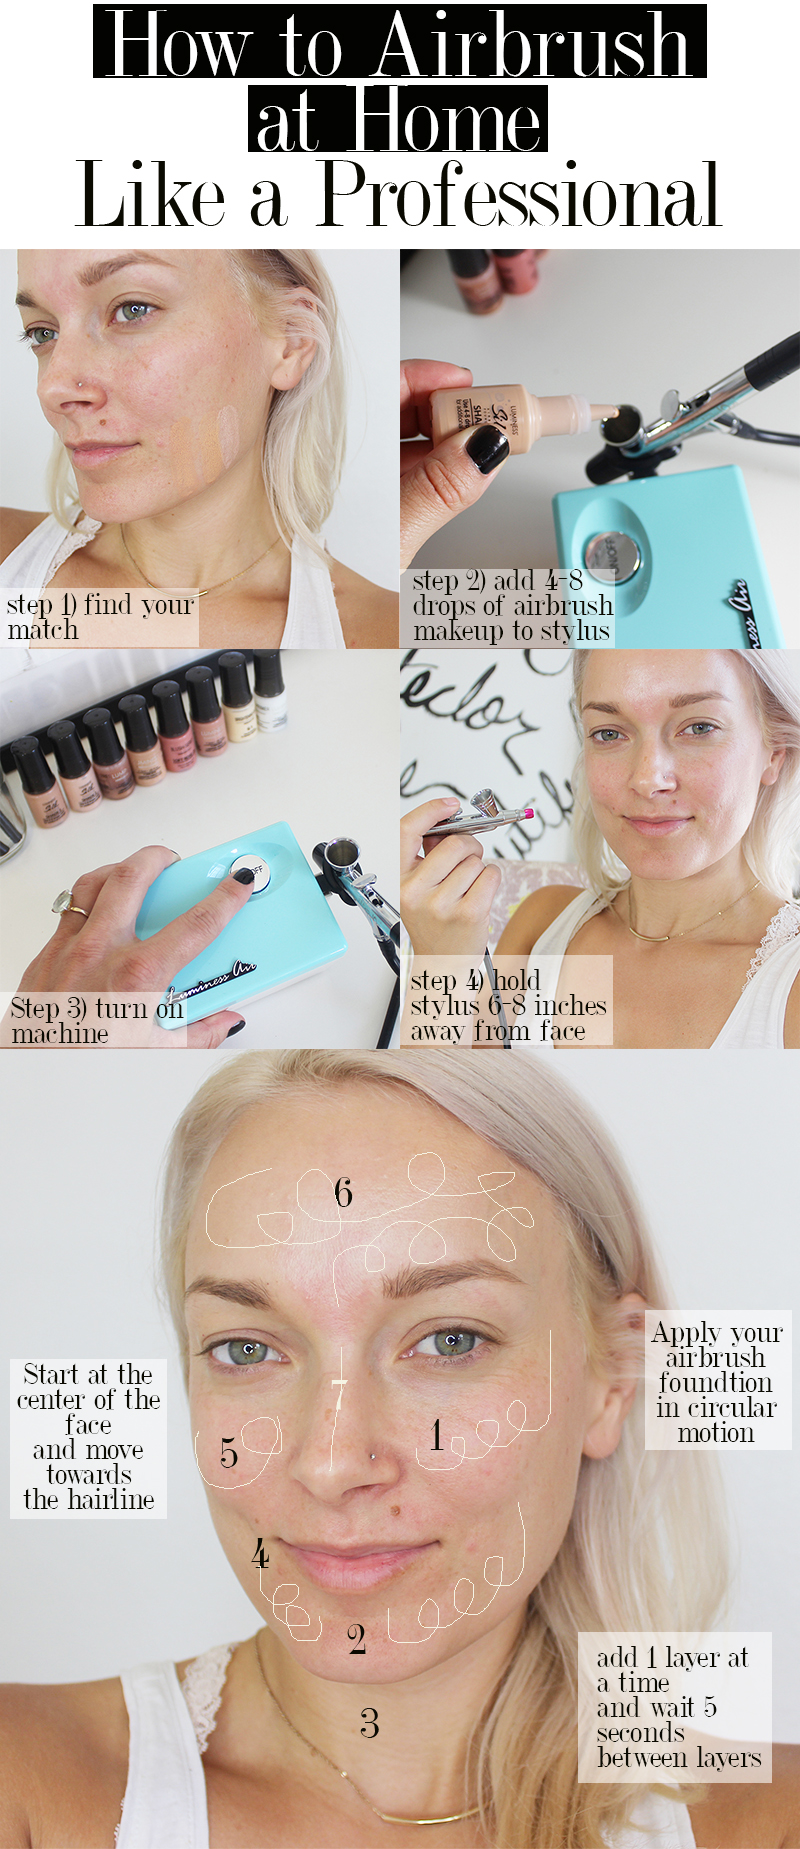 How to airbrush makeup at home for beginners